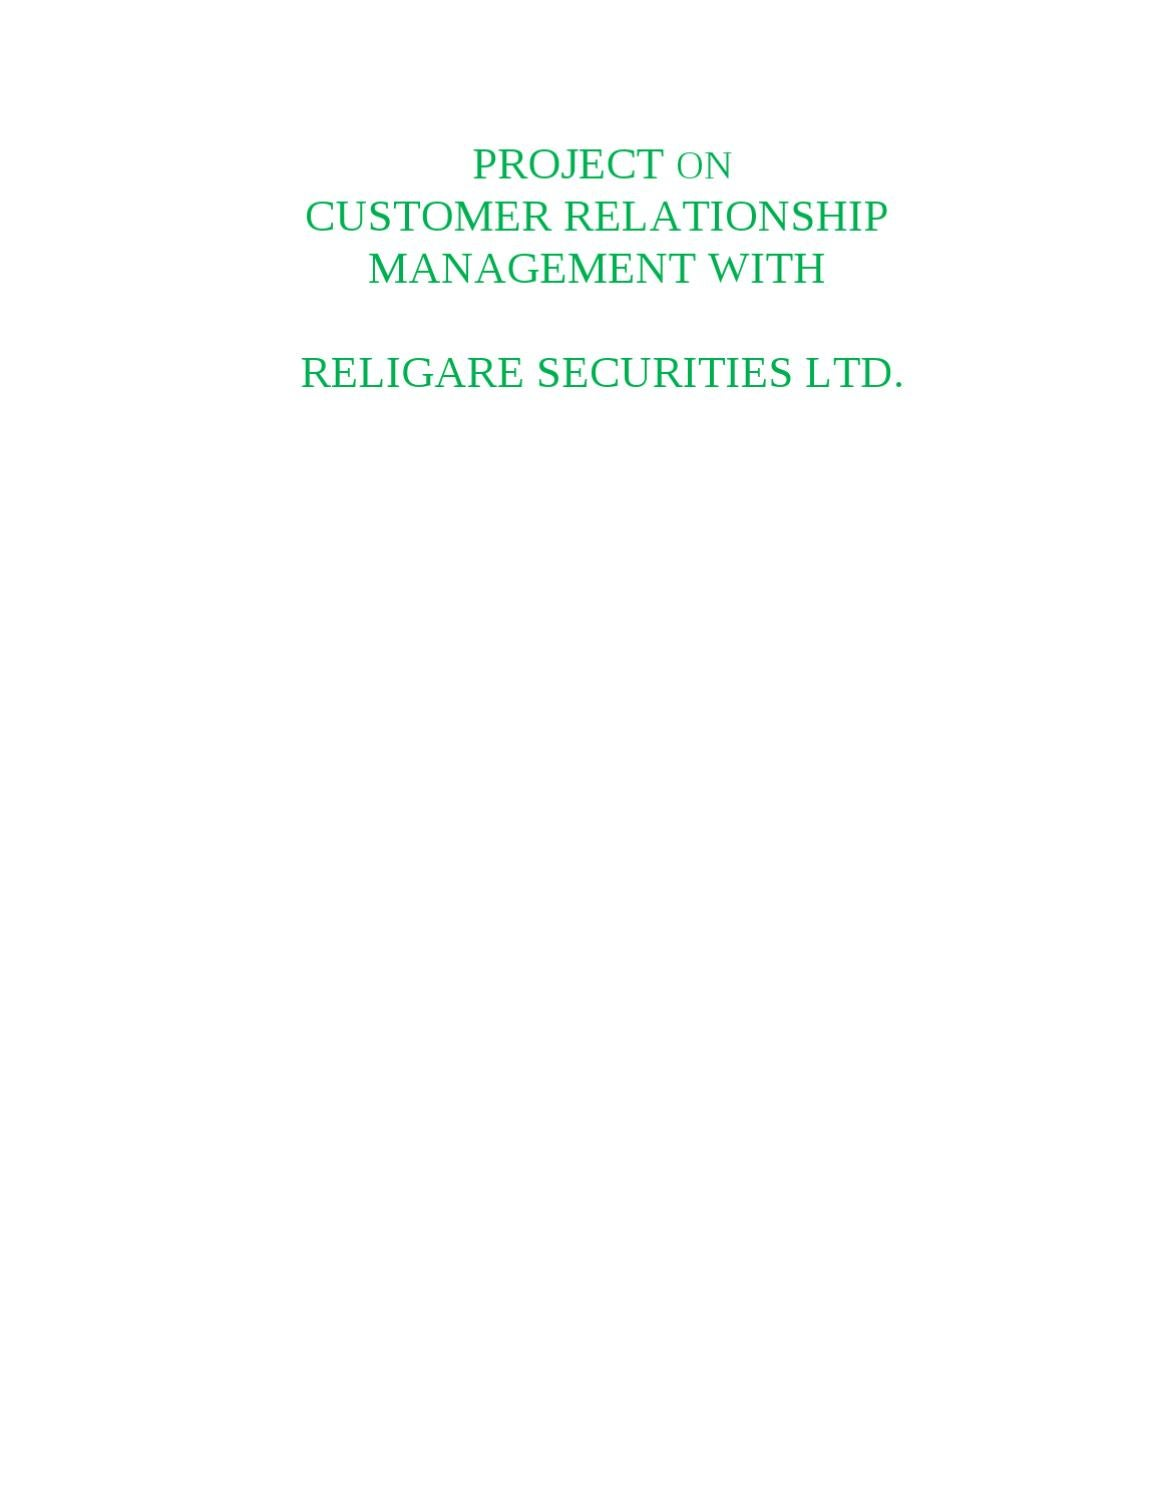 project on customer relationship management with religare securities ltd essay Mukta rani creations - located in gurgaon, we are established as service provider of commercial delivered project, buying a house & home insurance mukta rani creations gurgaon, haryana +91-8048112496 send e-mail products property management service.